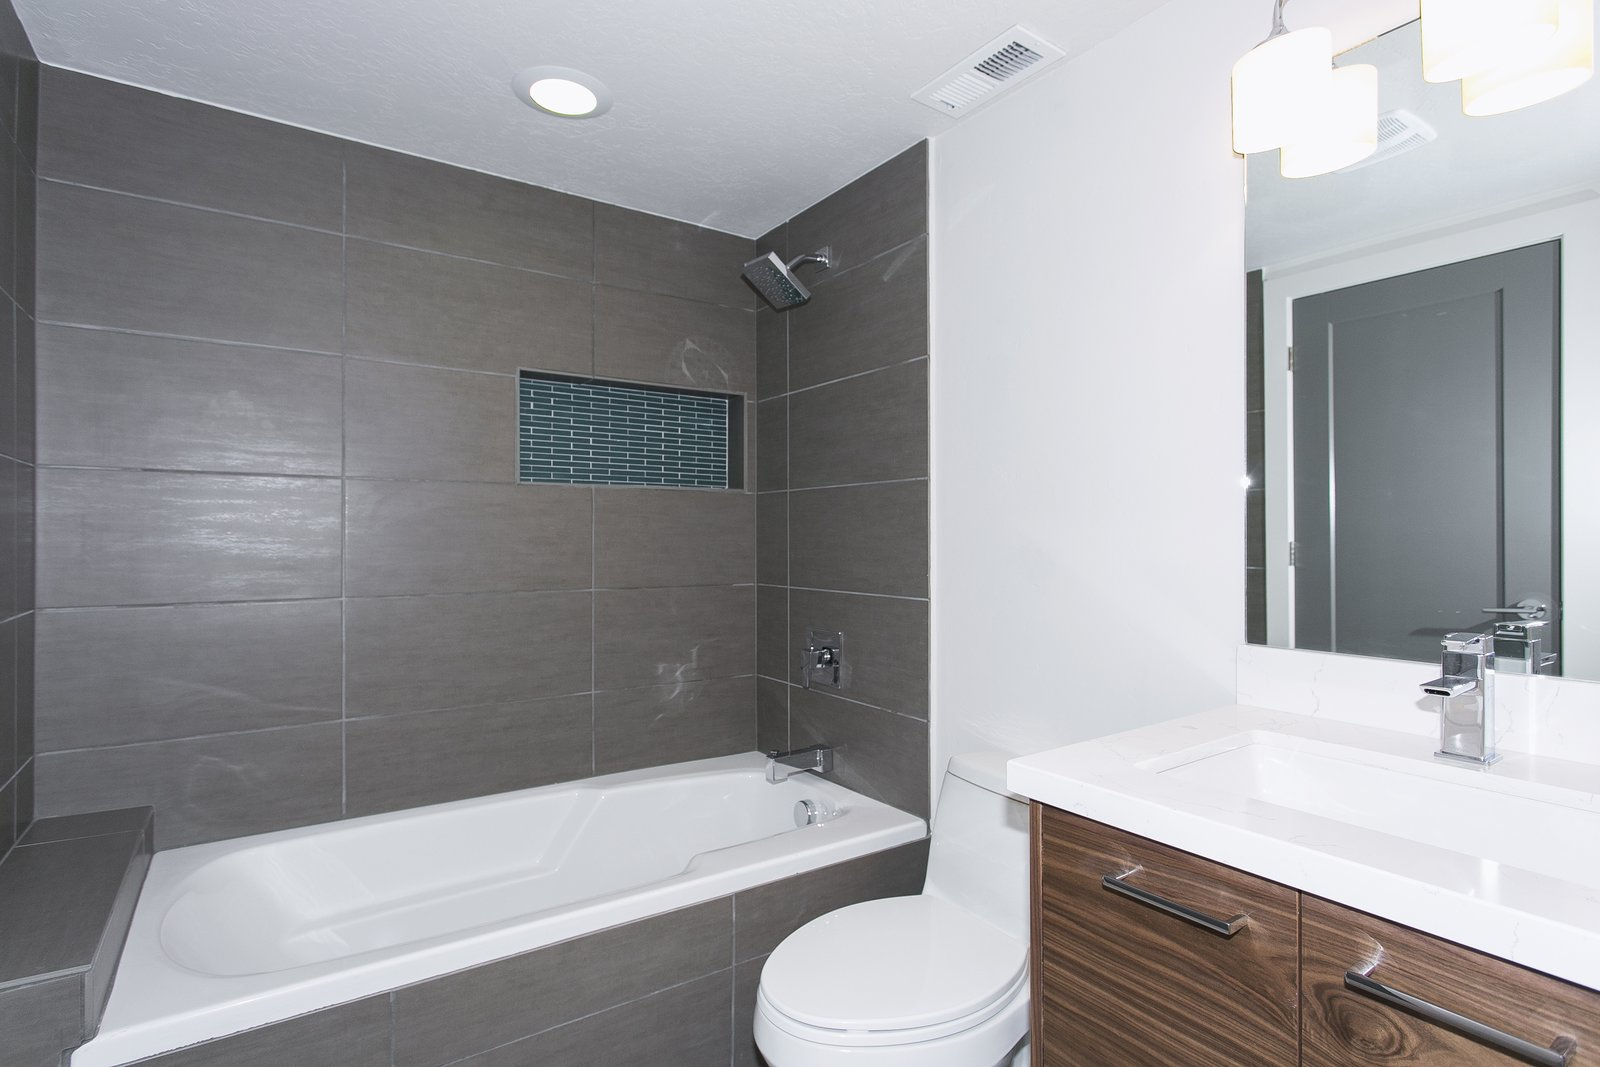 All baths have been updated with new horizontal straight lay tile with convenient storage nooks.  King of the Wasatch